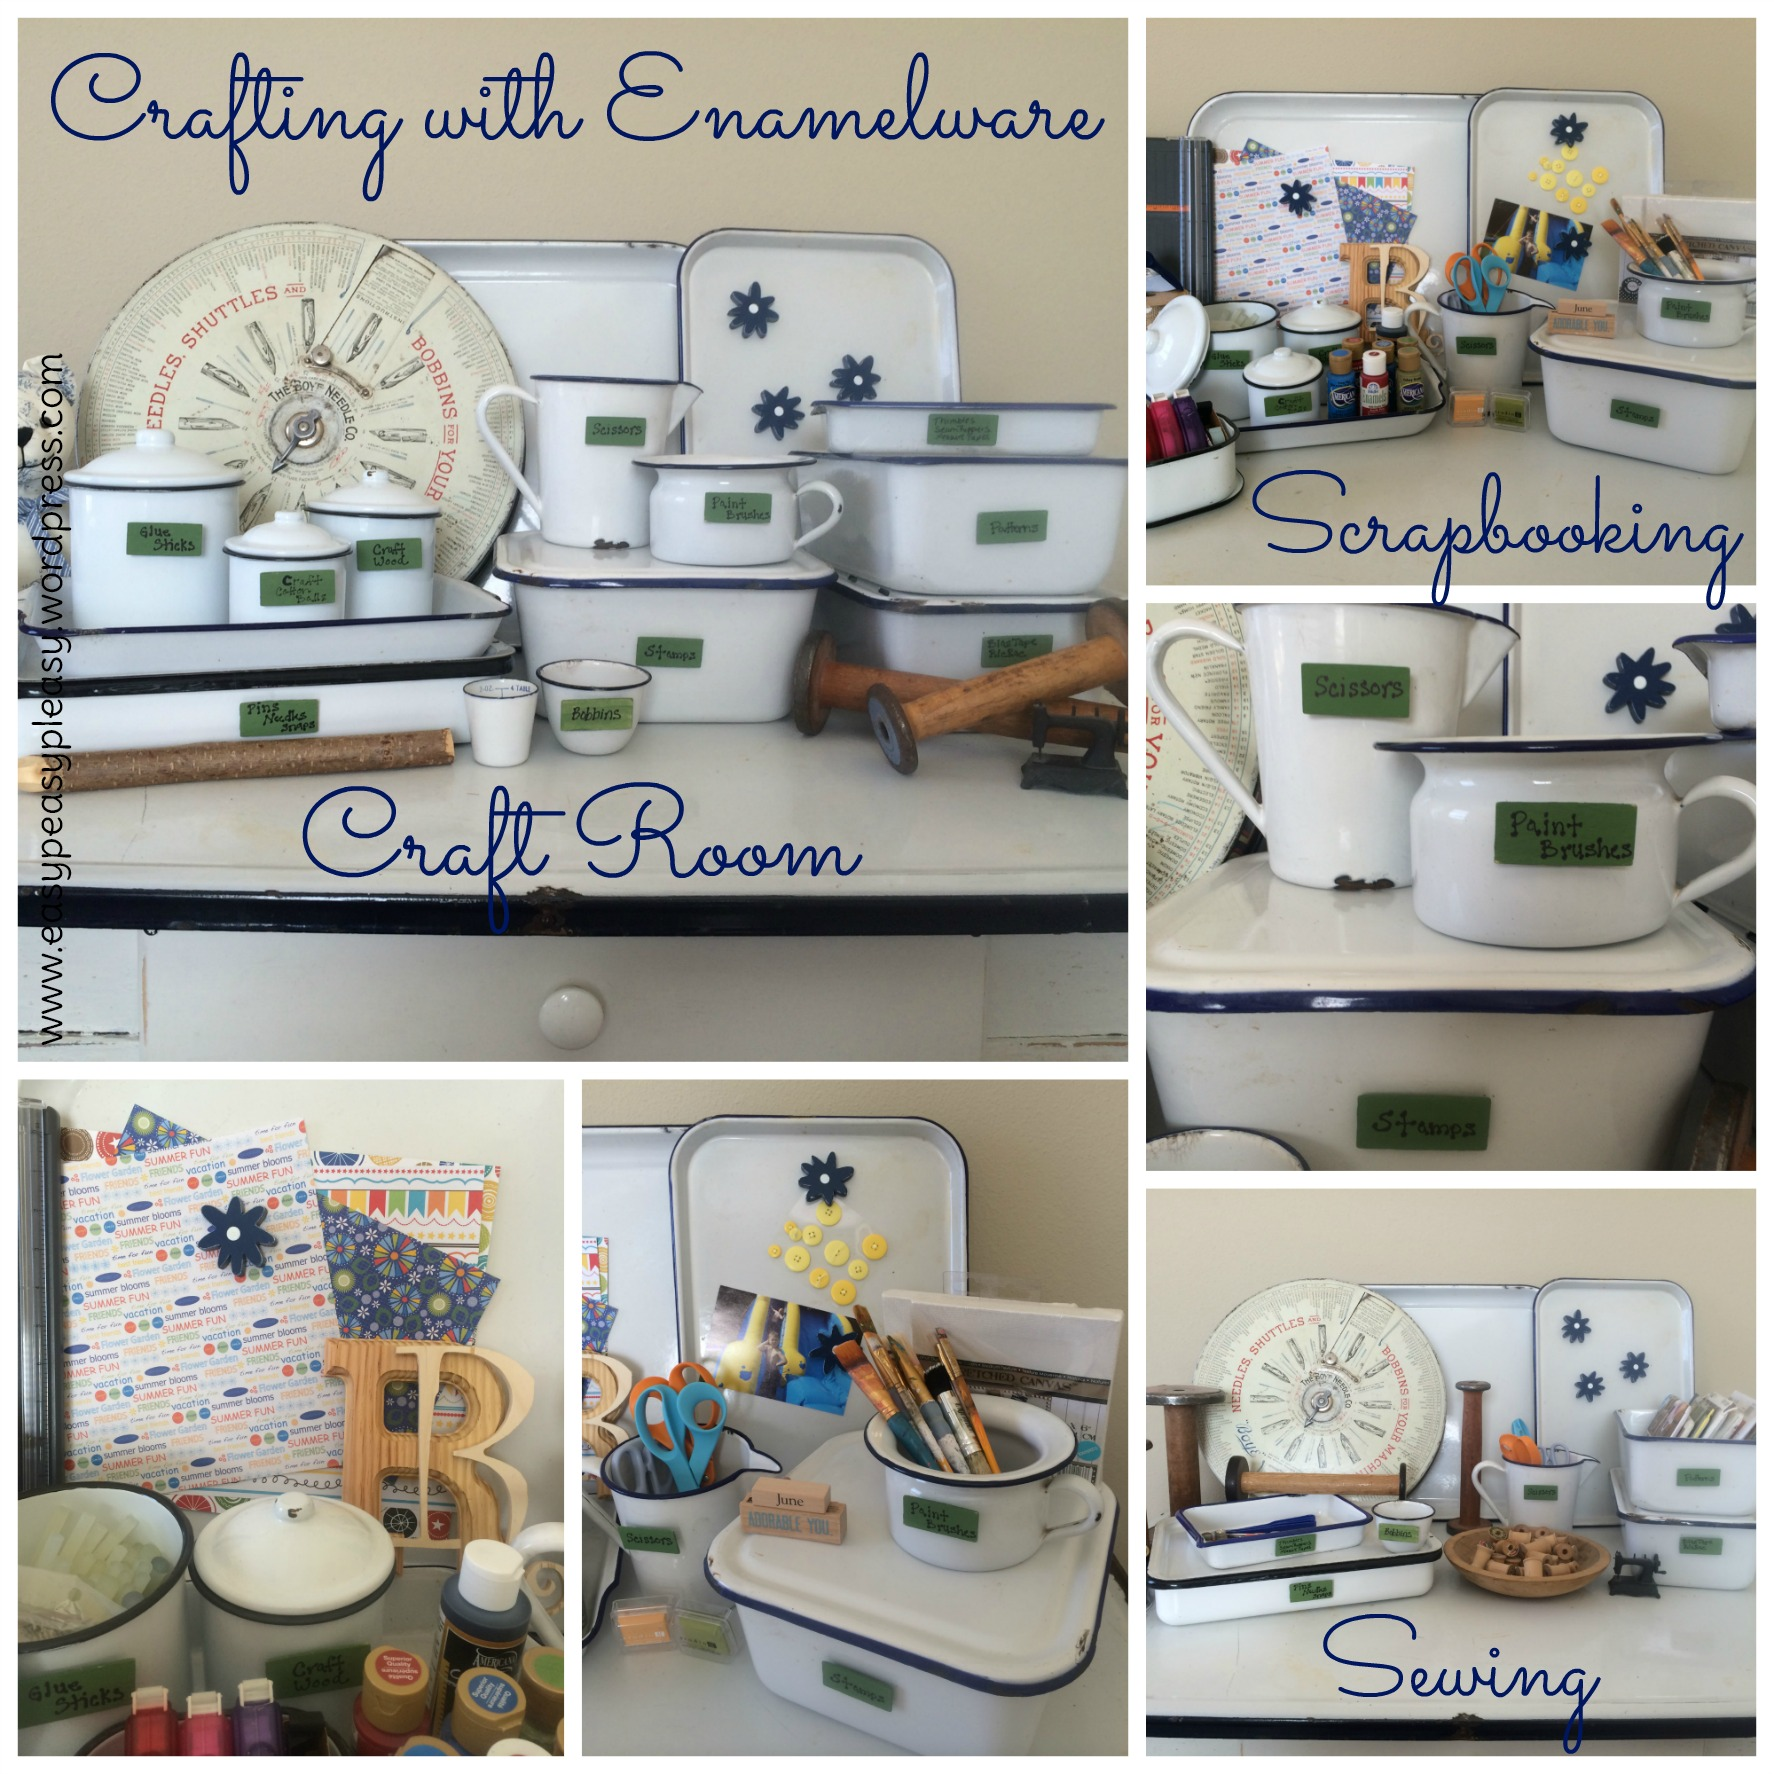 Vintage Kitchen Goods: My Enamelware Obsession